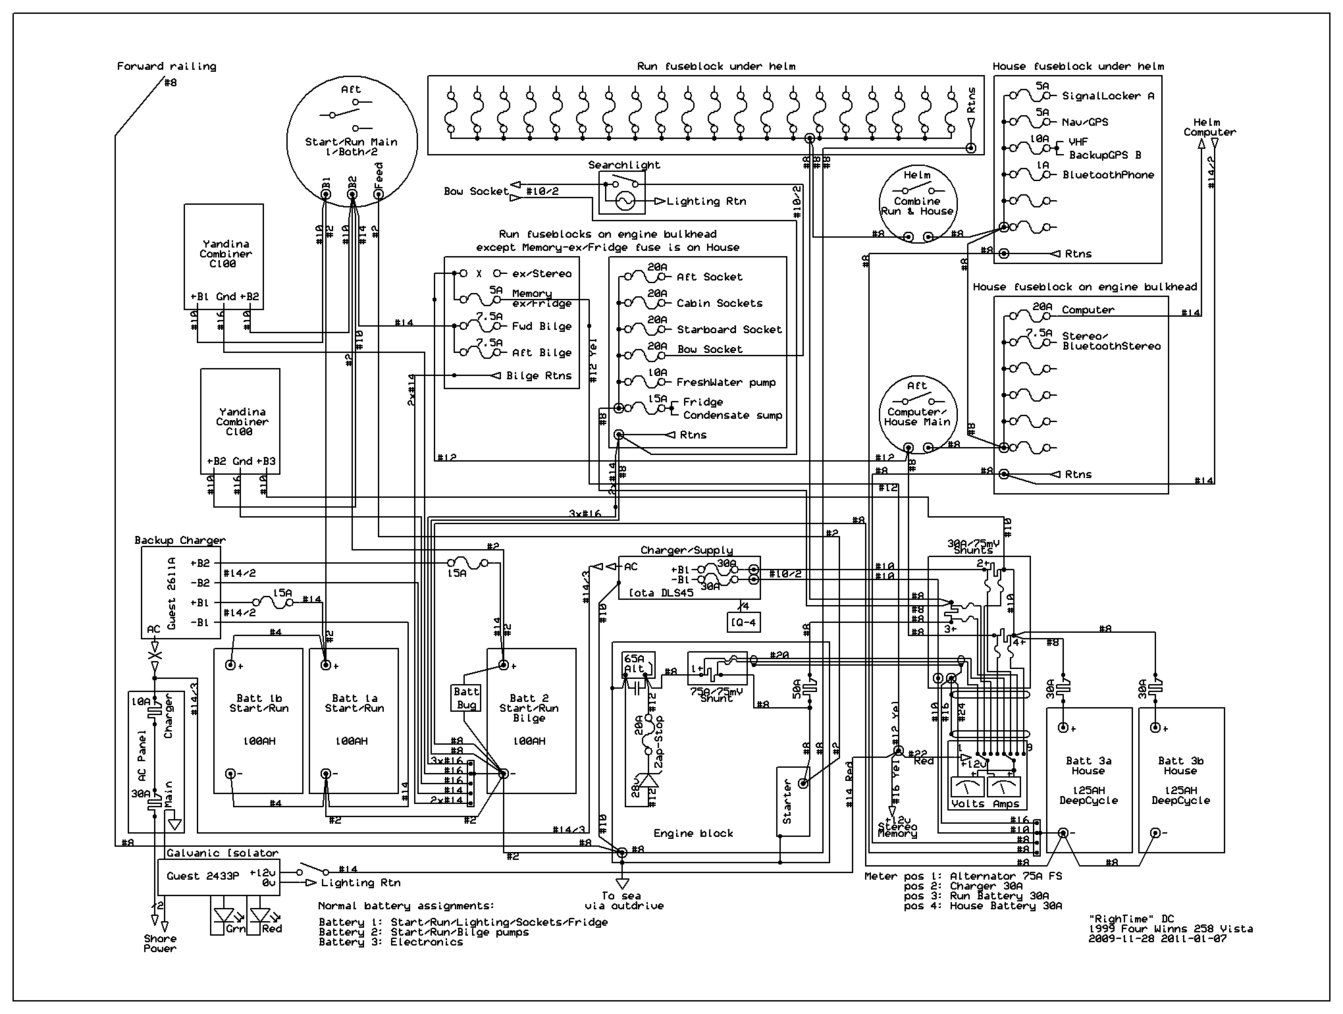 58ddf9263264877ec3bc6a359ebef0d4 sea pro boat wiring diagram free picture wiring diagram simonand sailboat wiring diagram at n-0.co